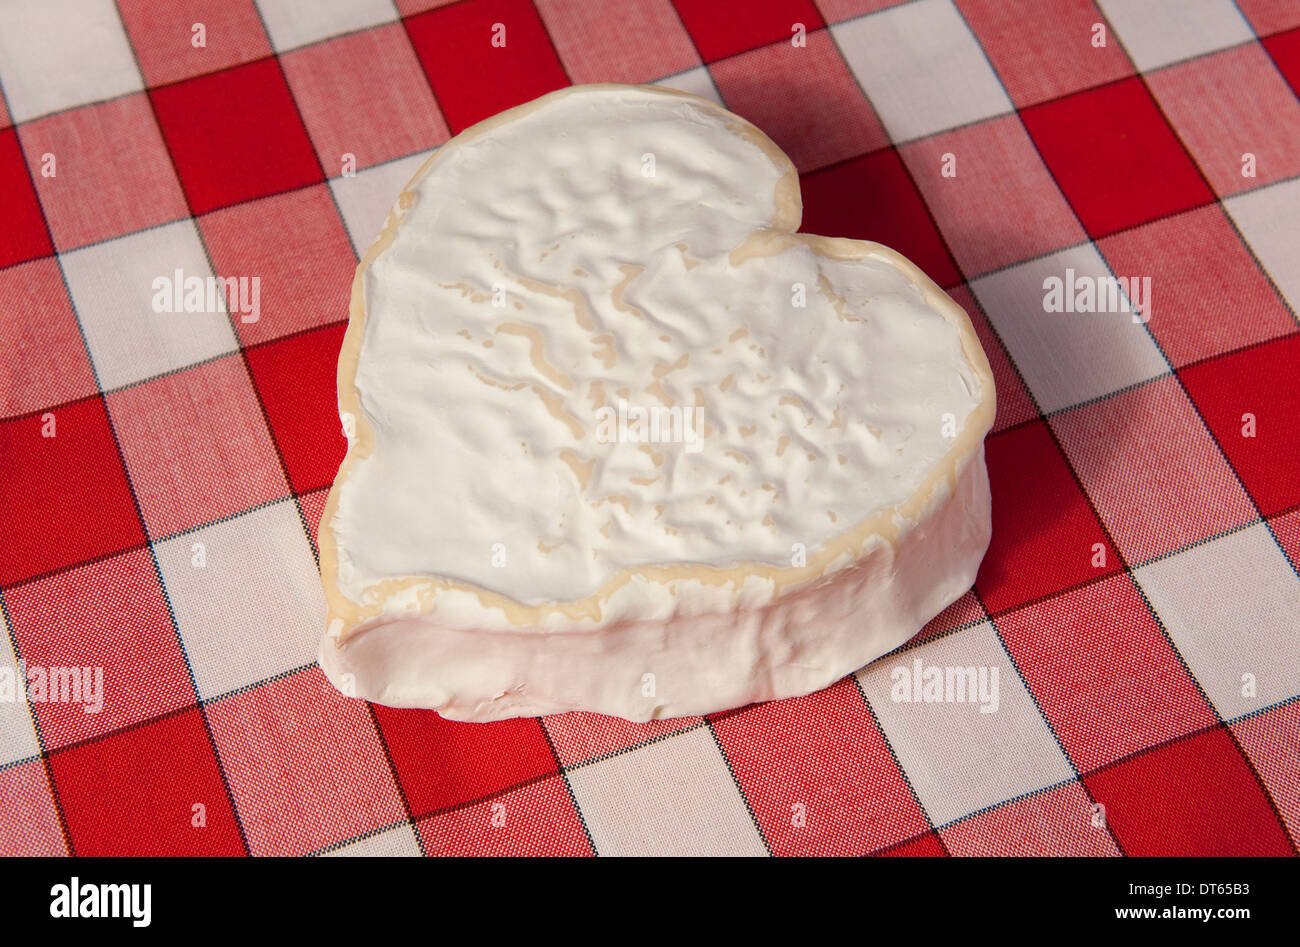 heart shaped cheese, normandy, france - Stock Image